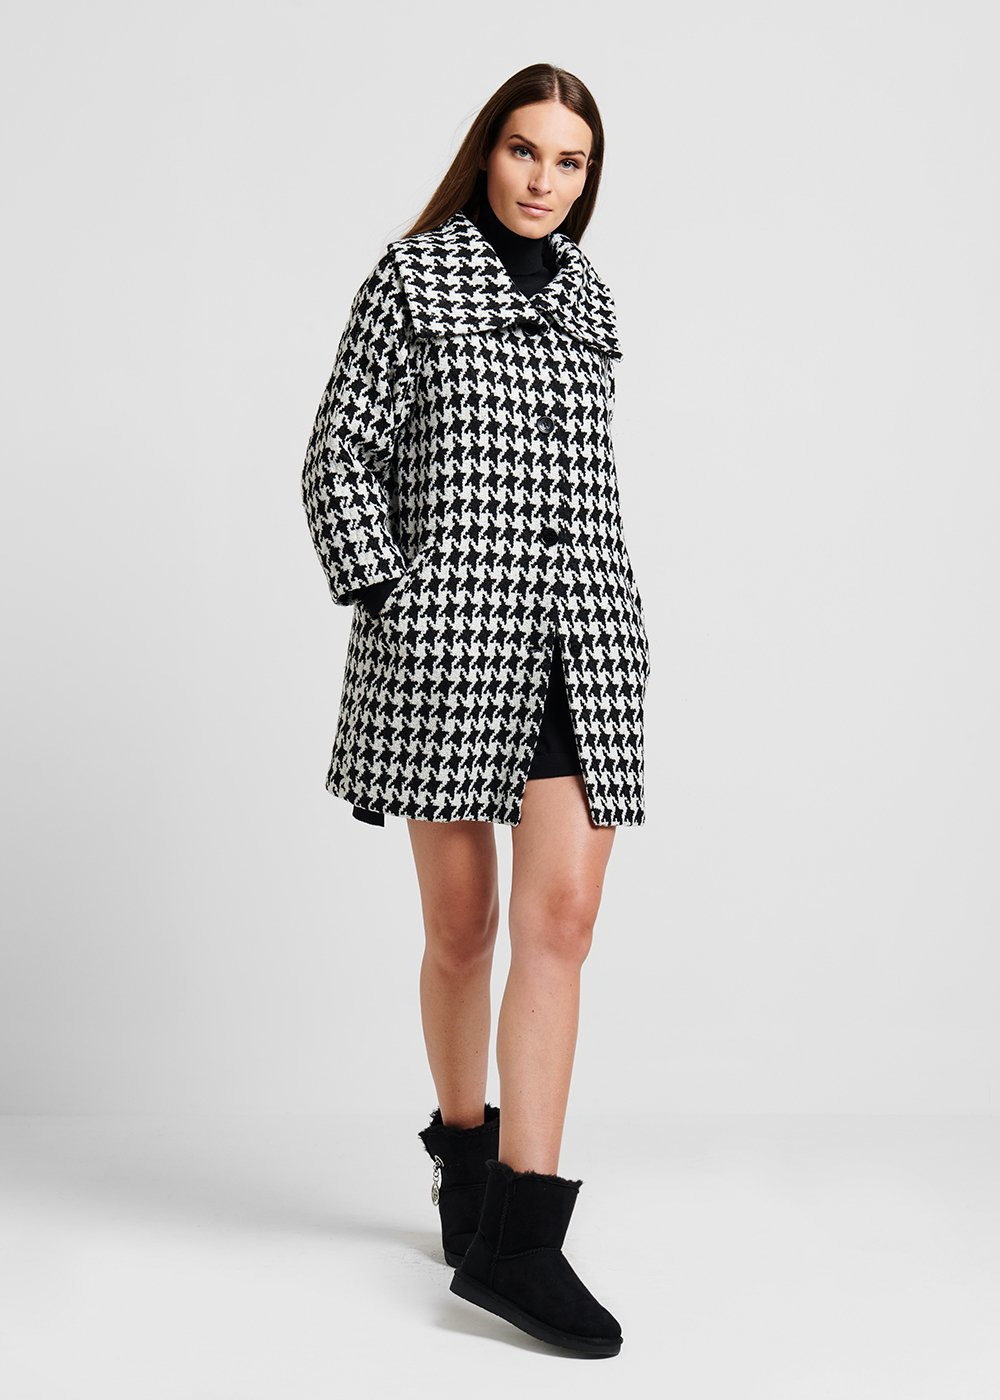 Jacquard coat with houndstooth pattern - Black / White Fantasia - Woman